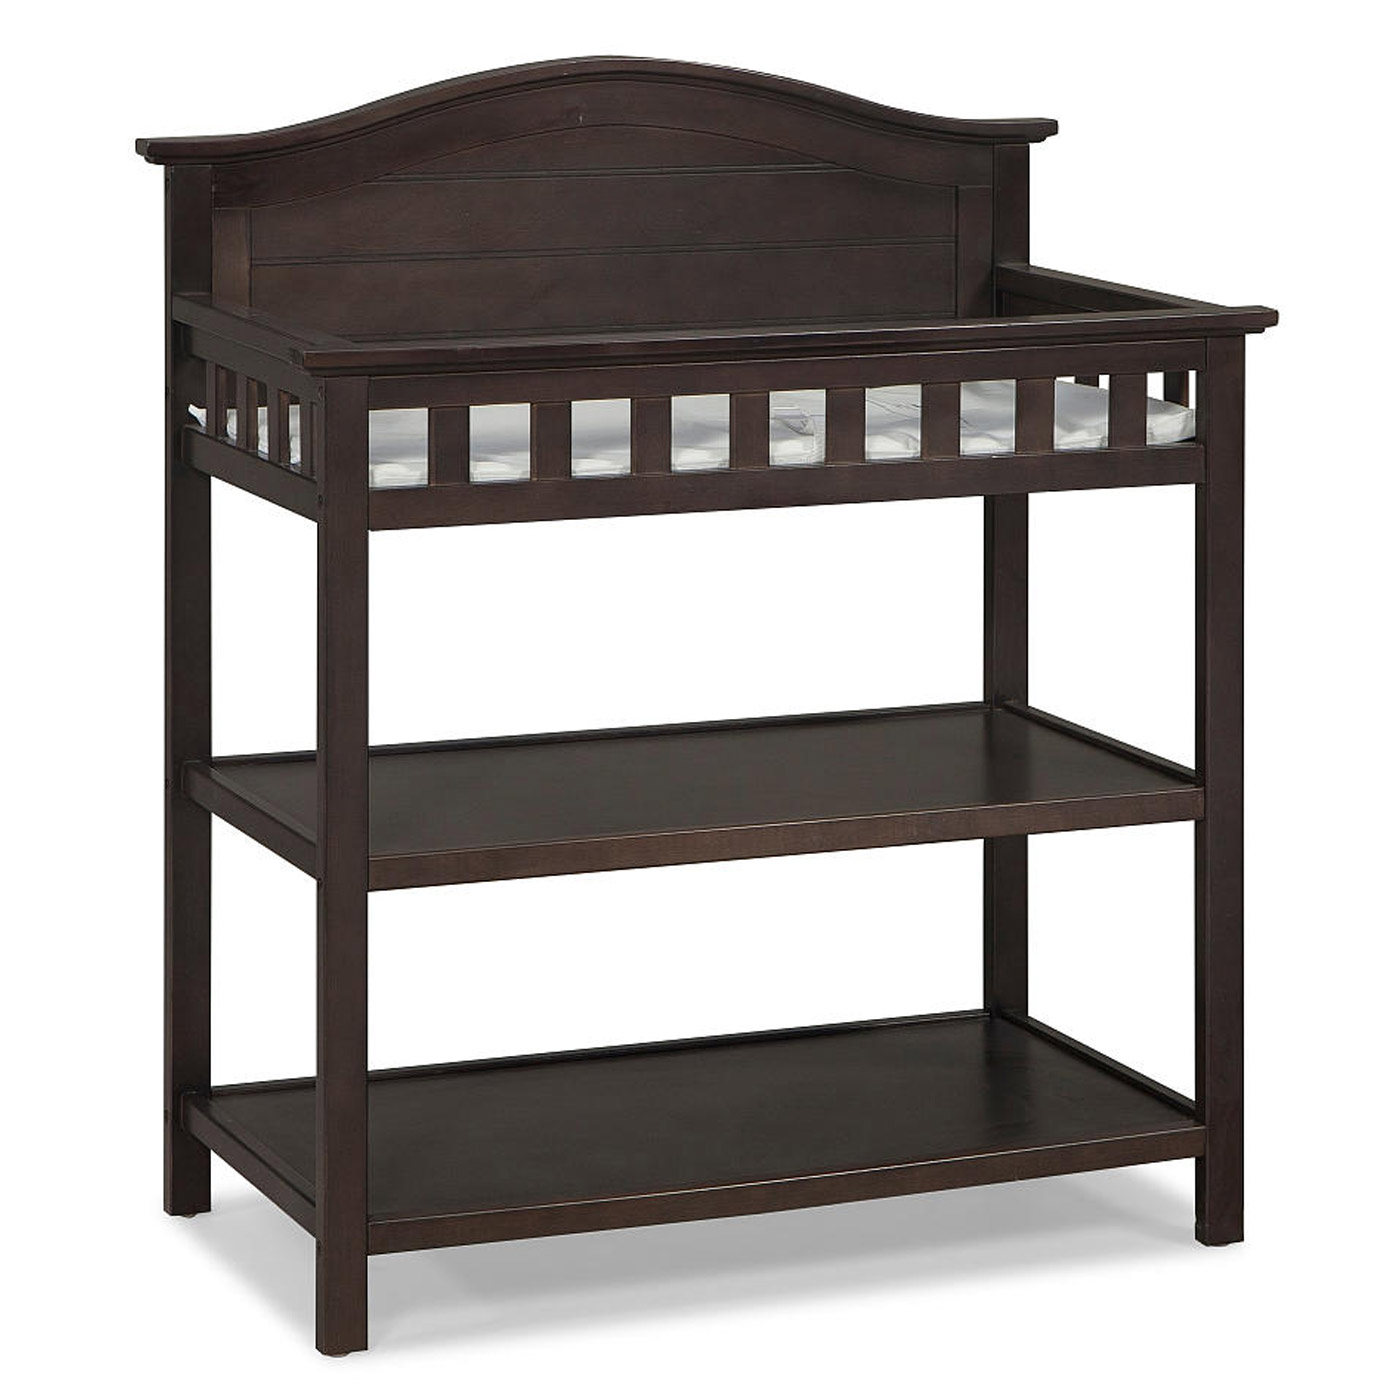 Thomasville 2 Piece Nursery Set   Southern Dunes Lifestyle Crib And  Dressing Table In Espresso FREE SHIPPING